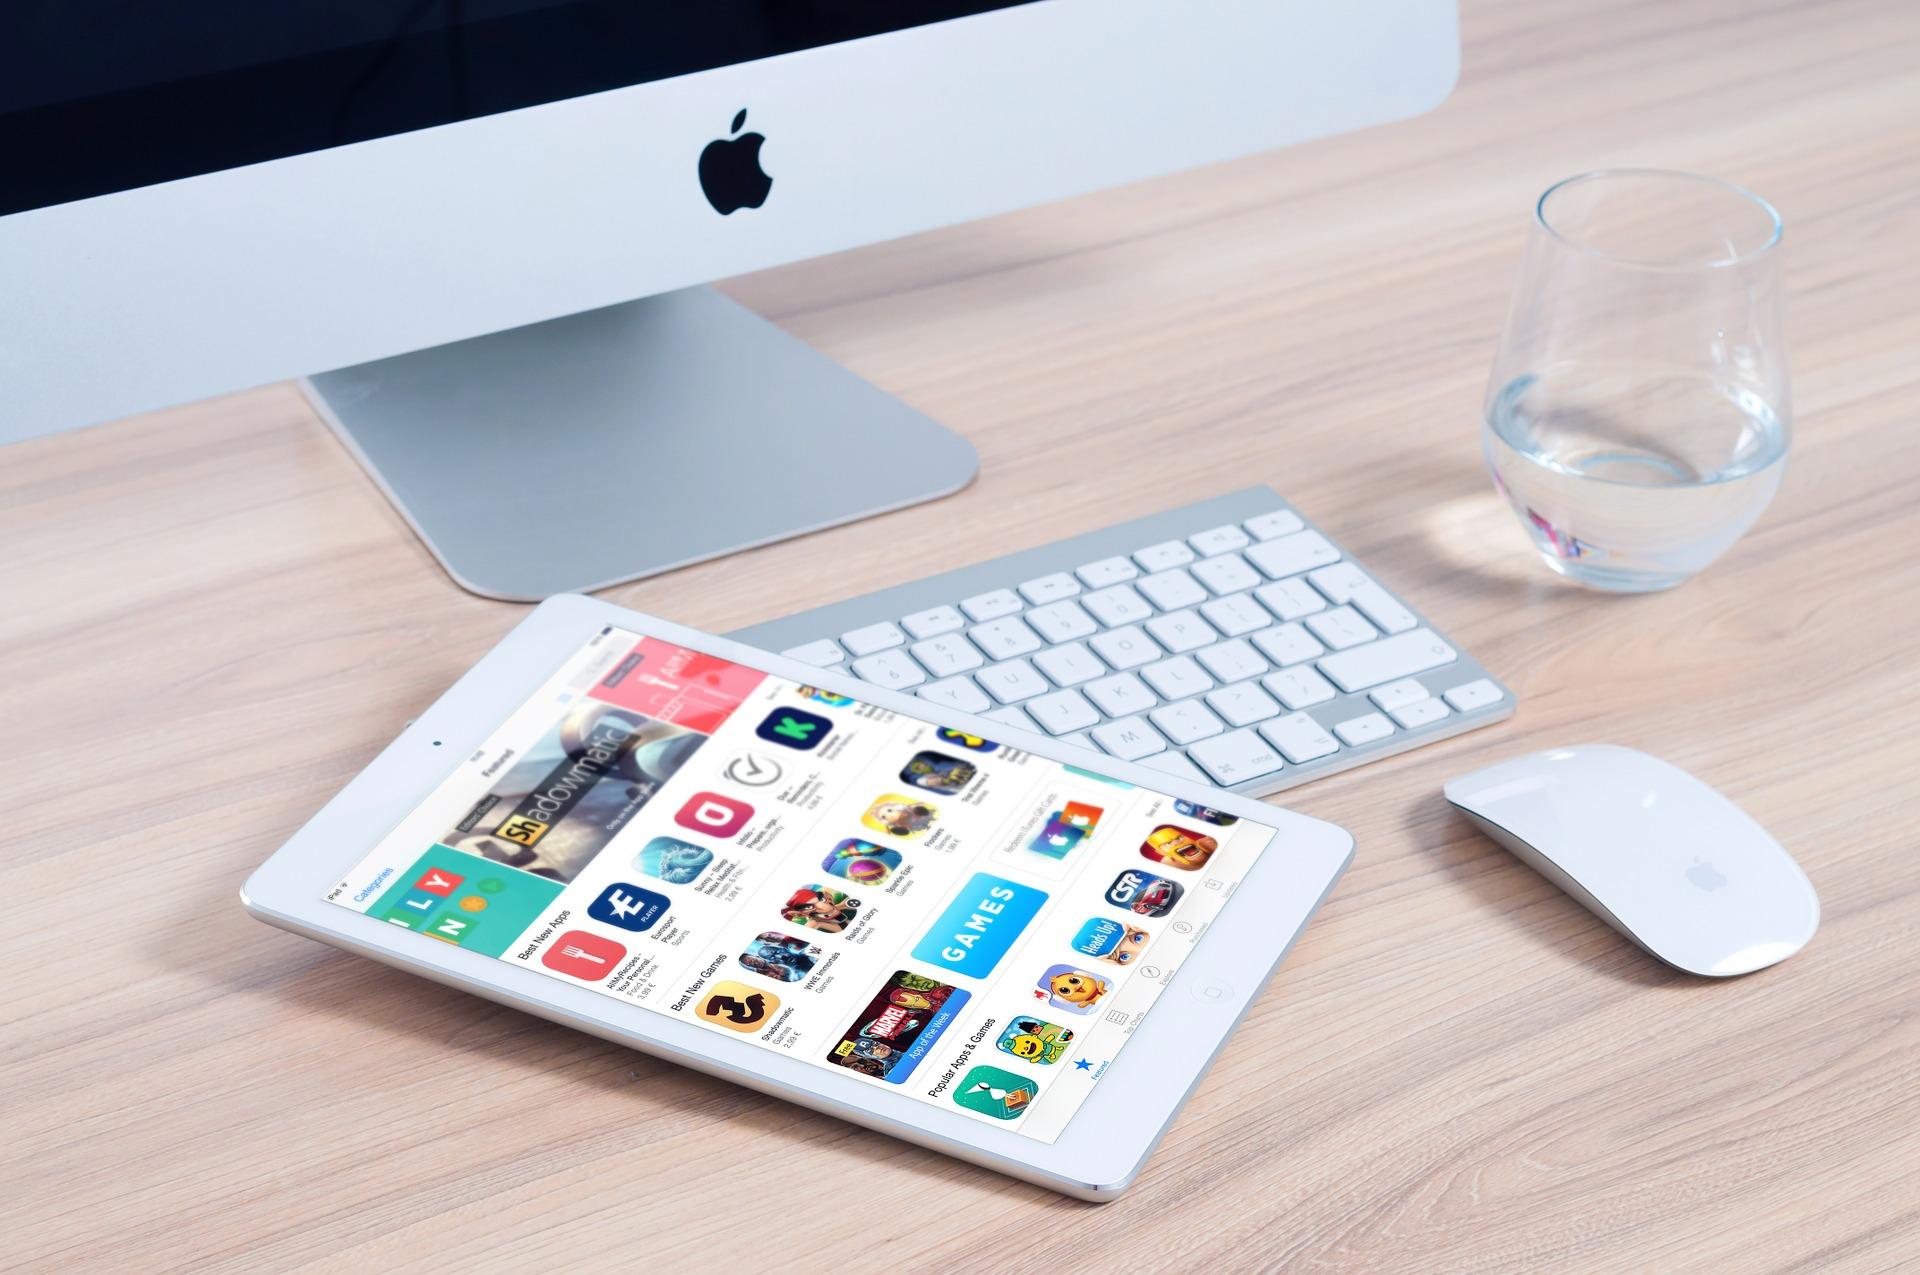 Mobile Shopping Apps with Designs That Inspire - Live Chat